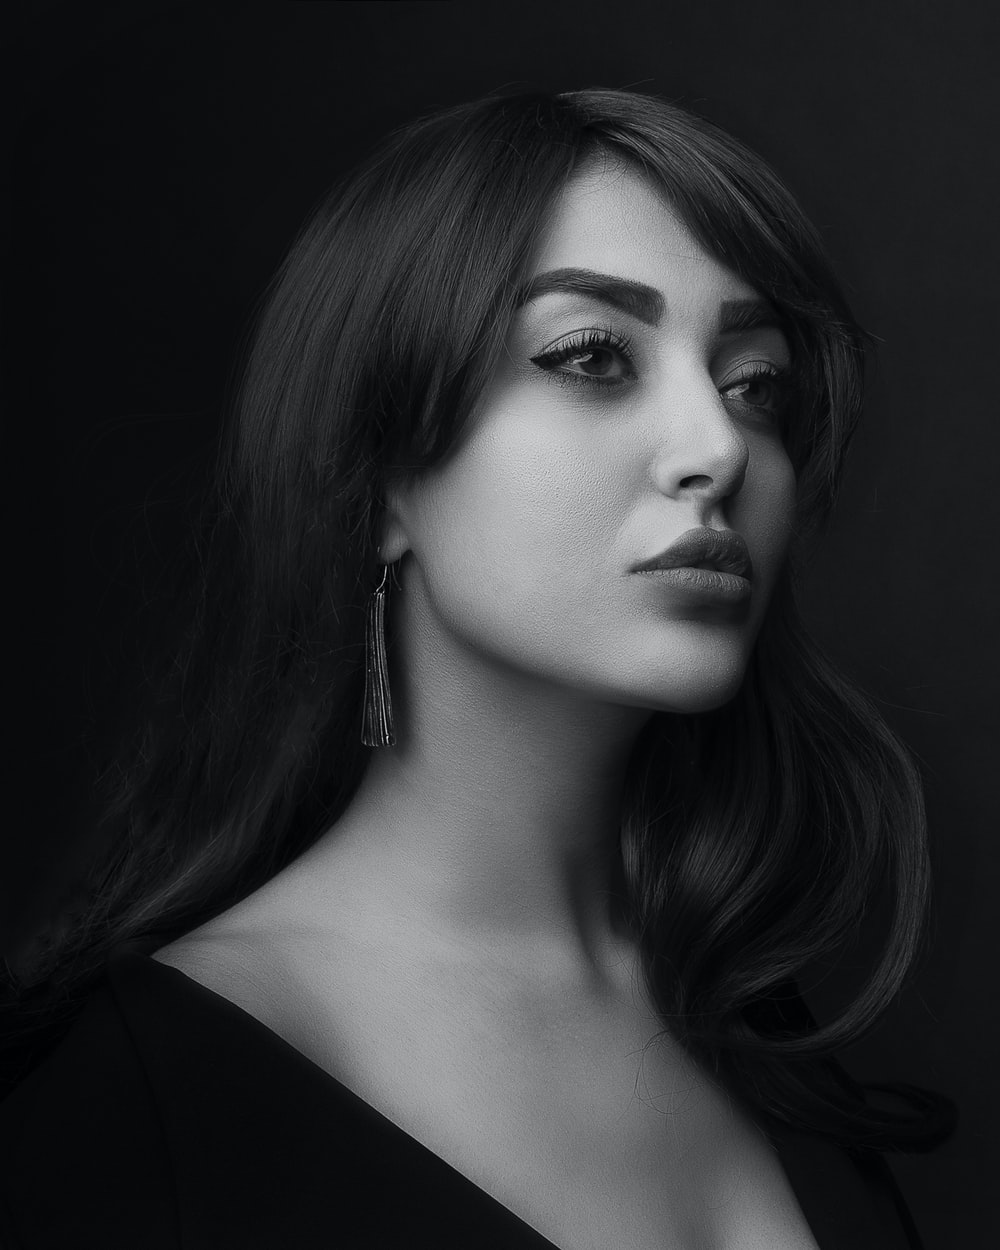 grayscale photo of woman wearing black top in black background